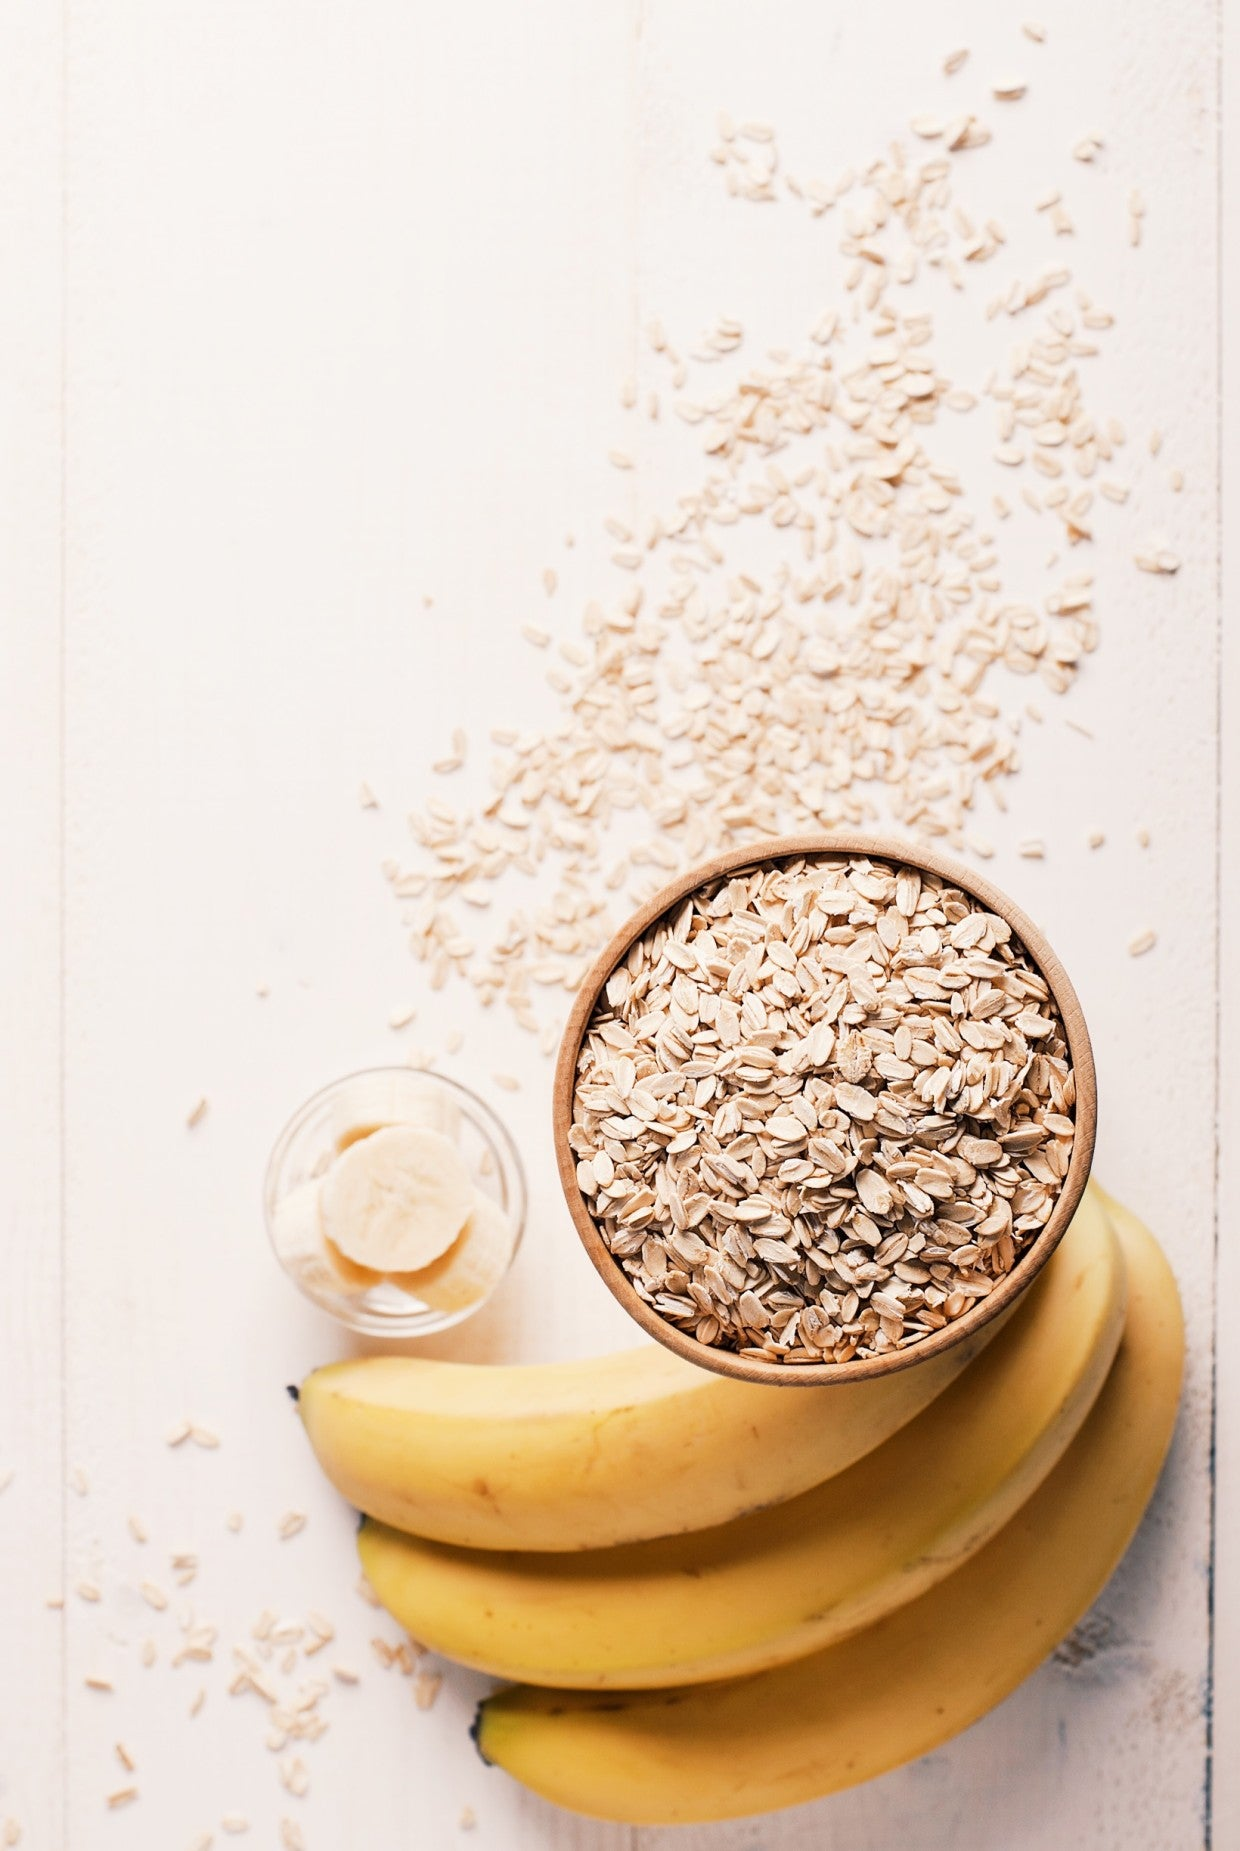 oatmeal and banana on table